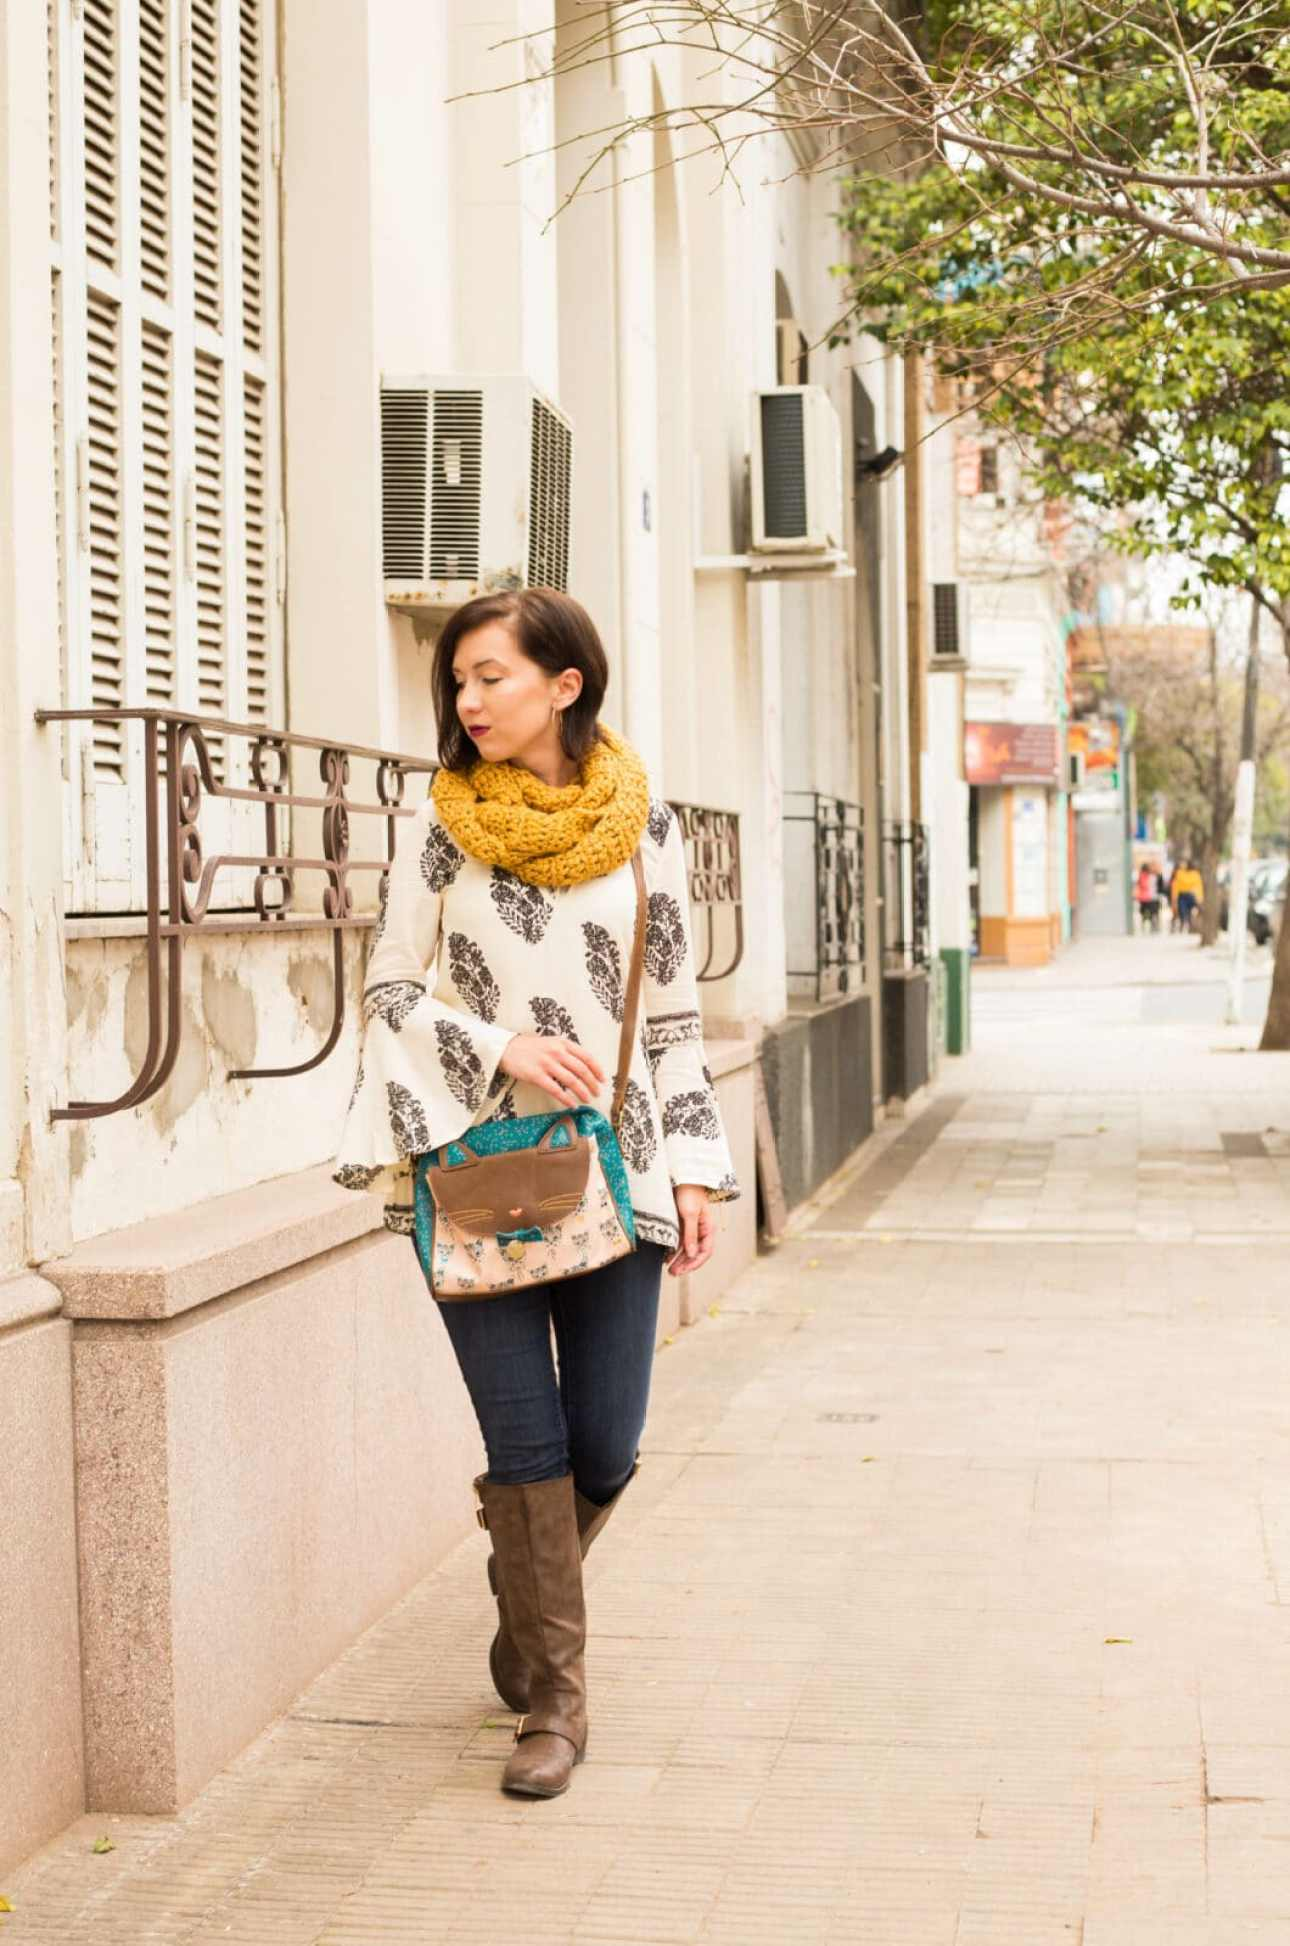 Shein top and ModCloth cat bag